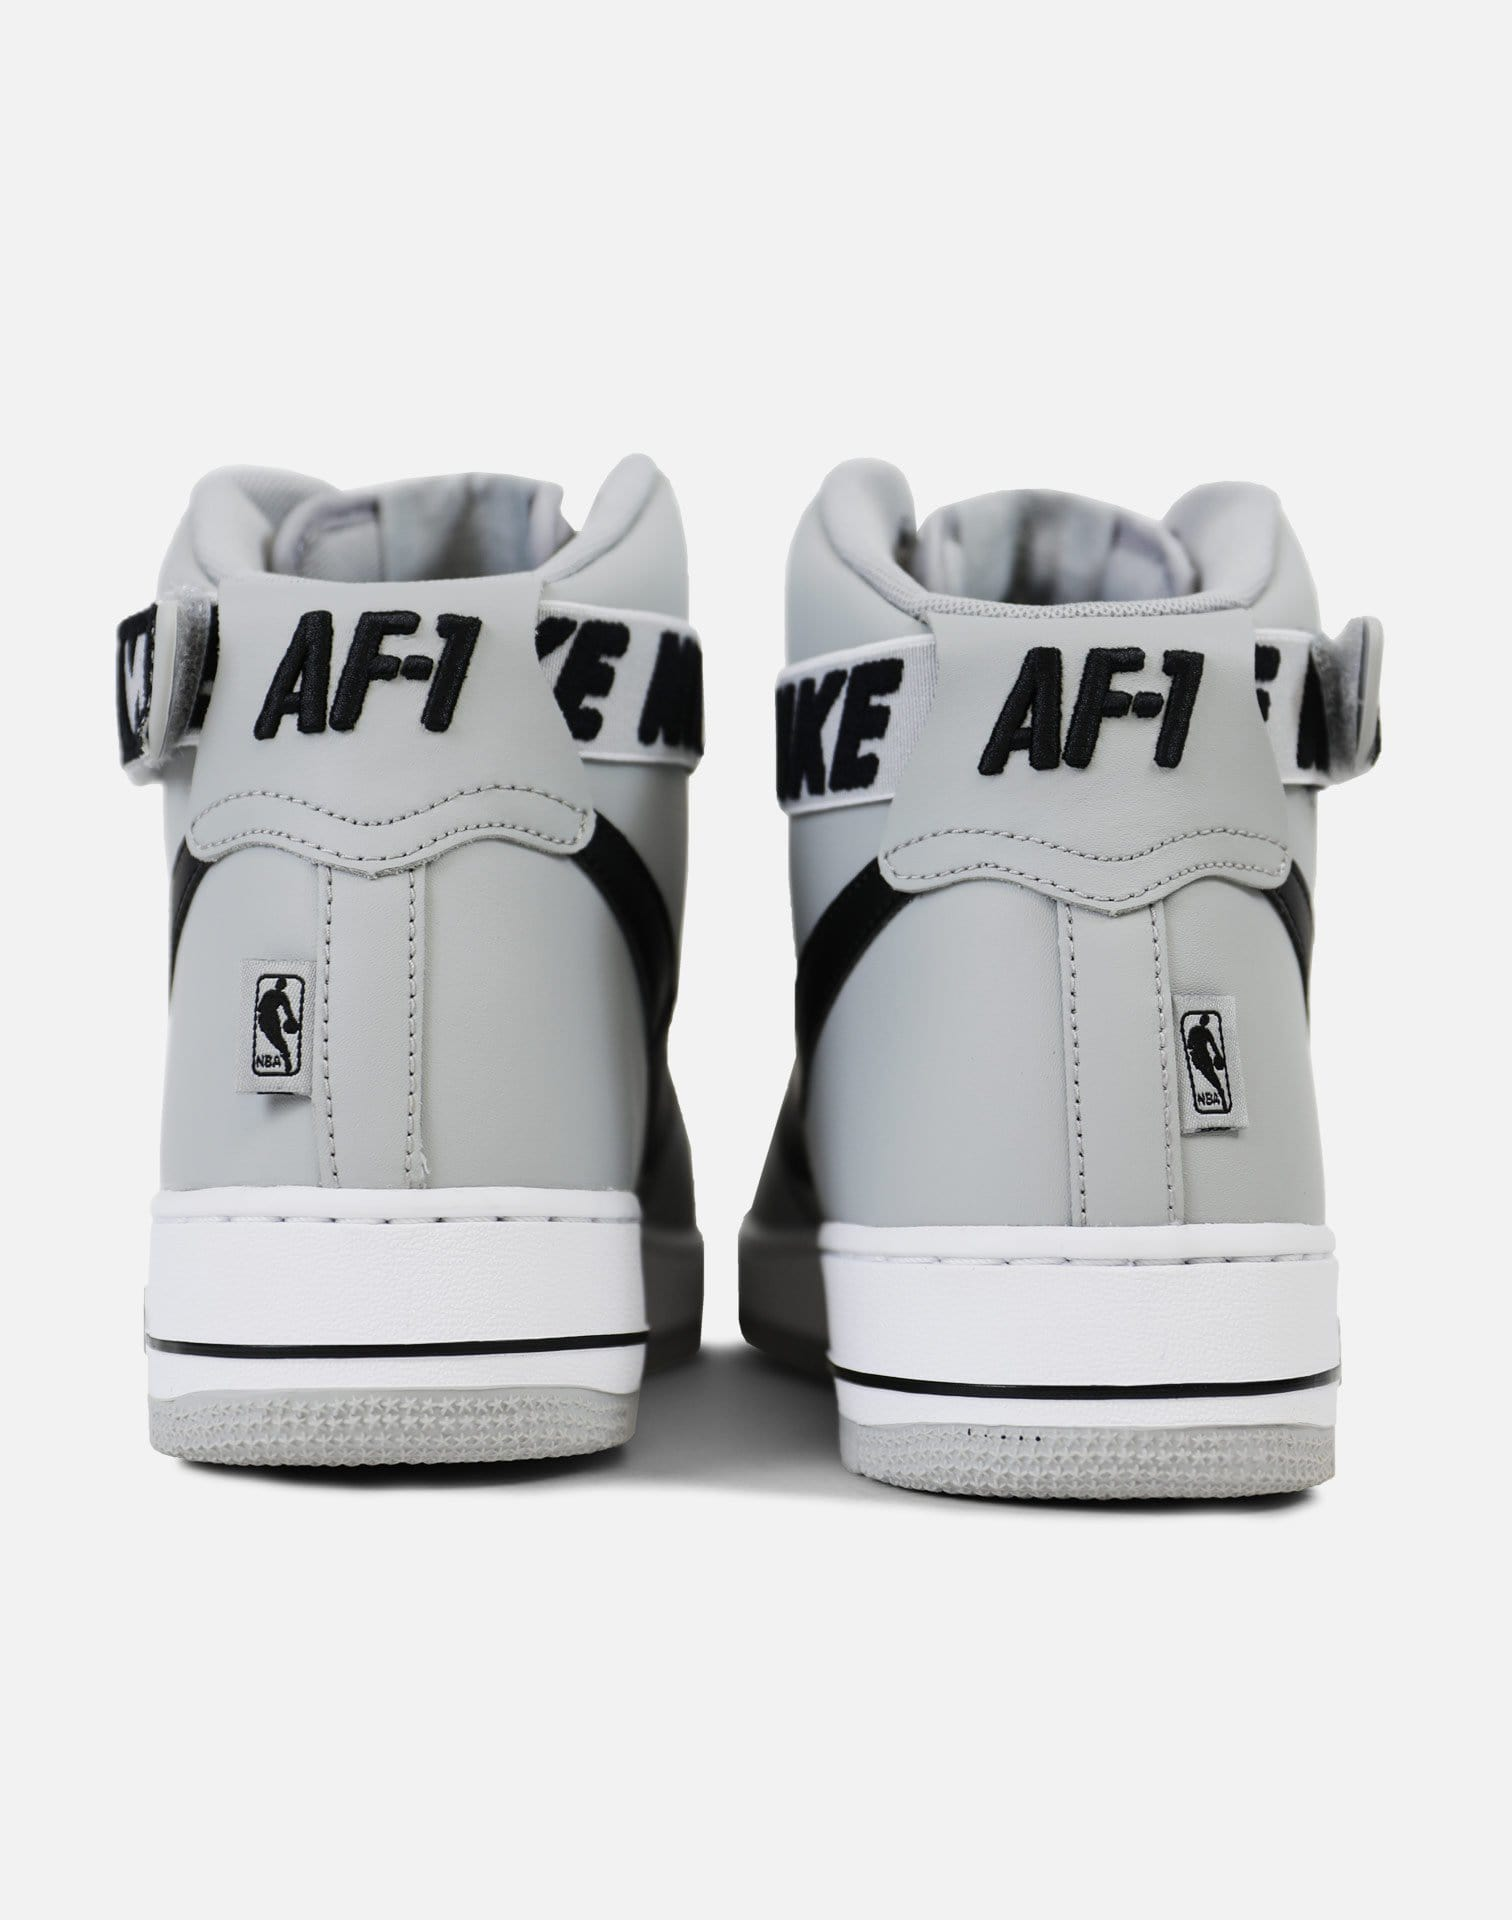 Nike Air Force 1 '07 High LV8 'Statement Game' (Flight Silver/Black-White)